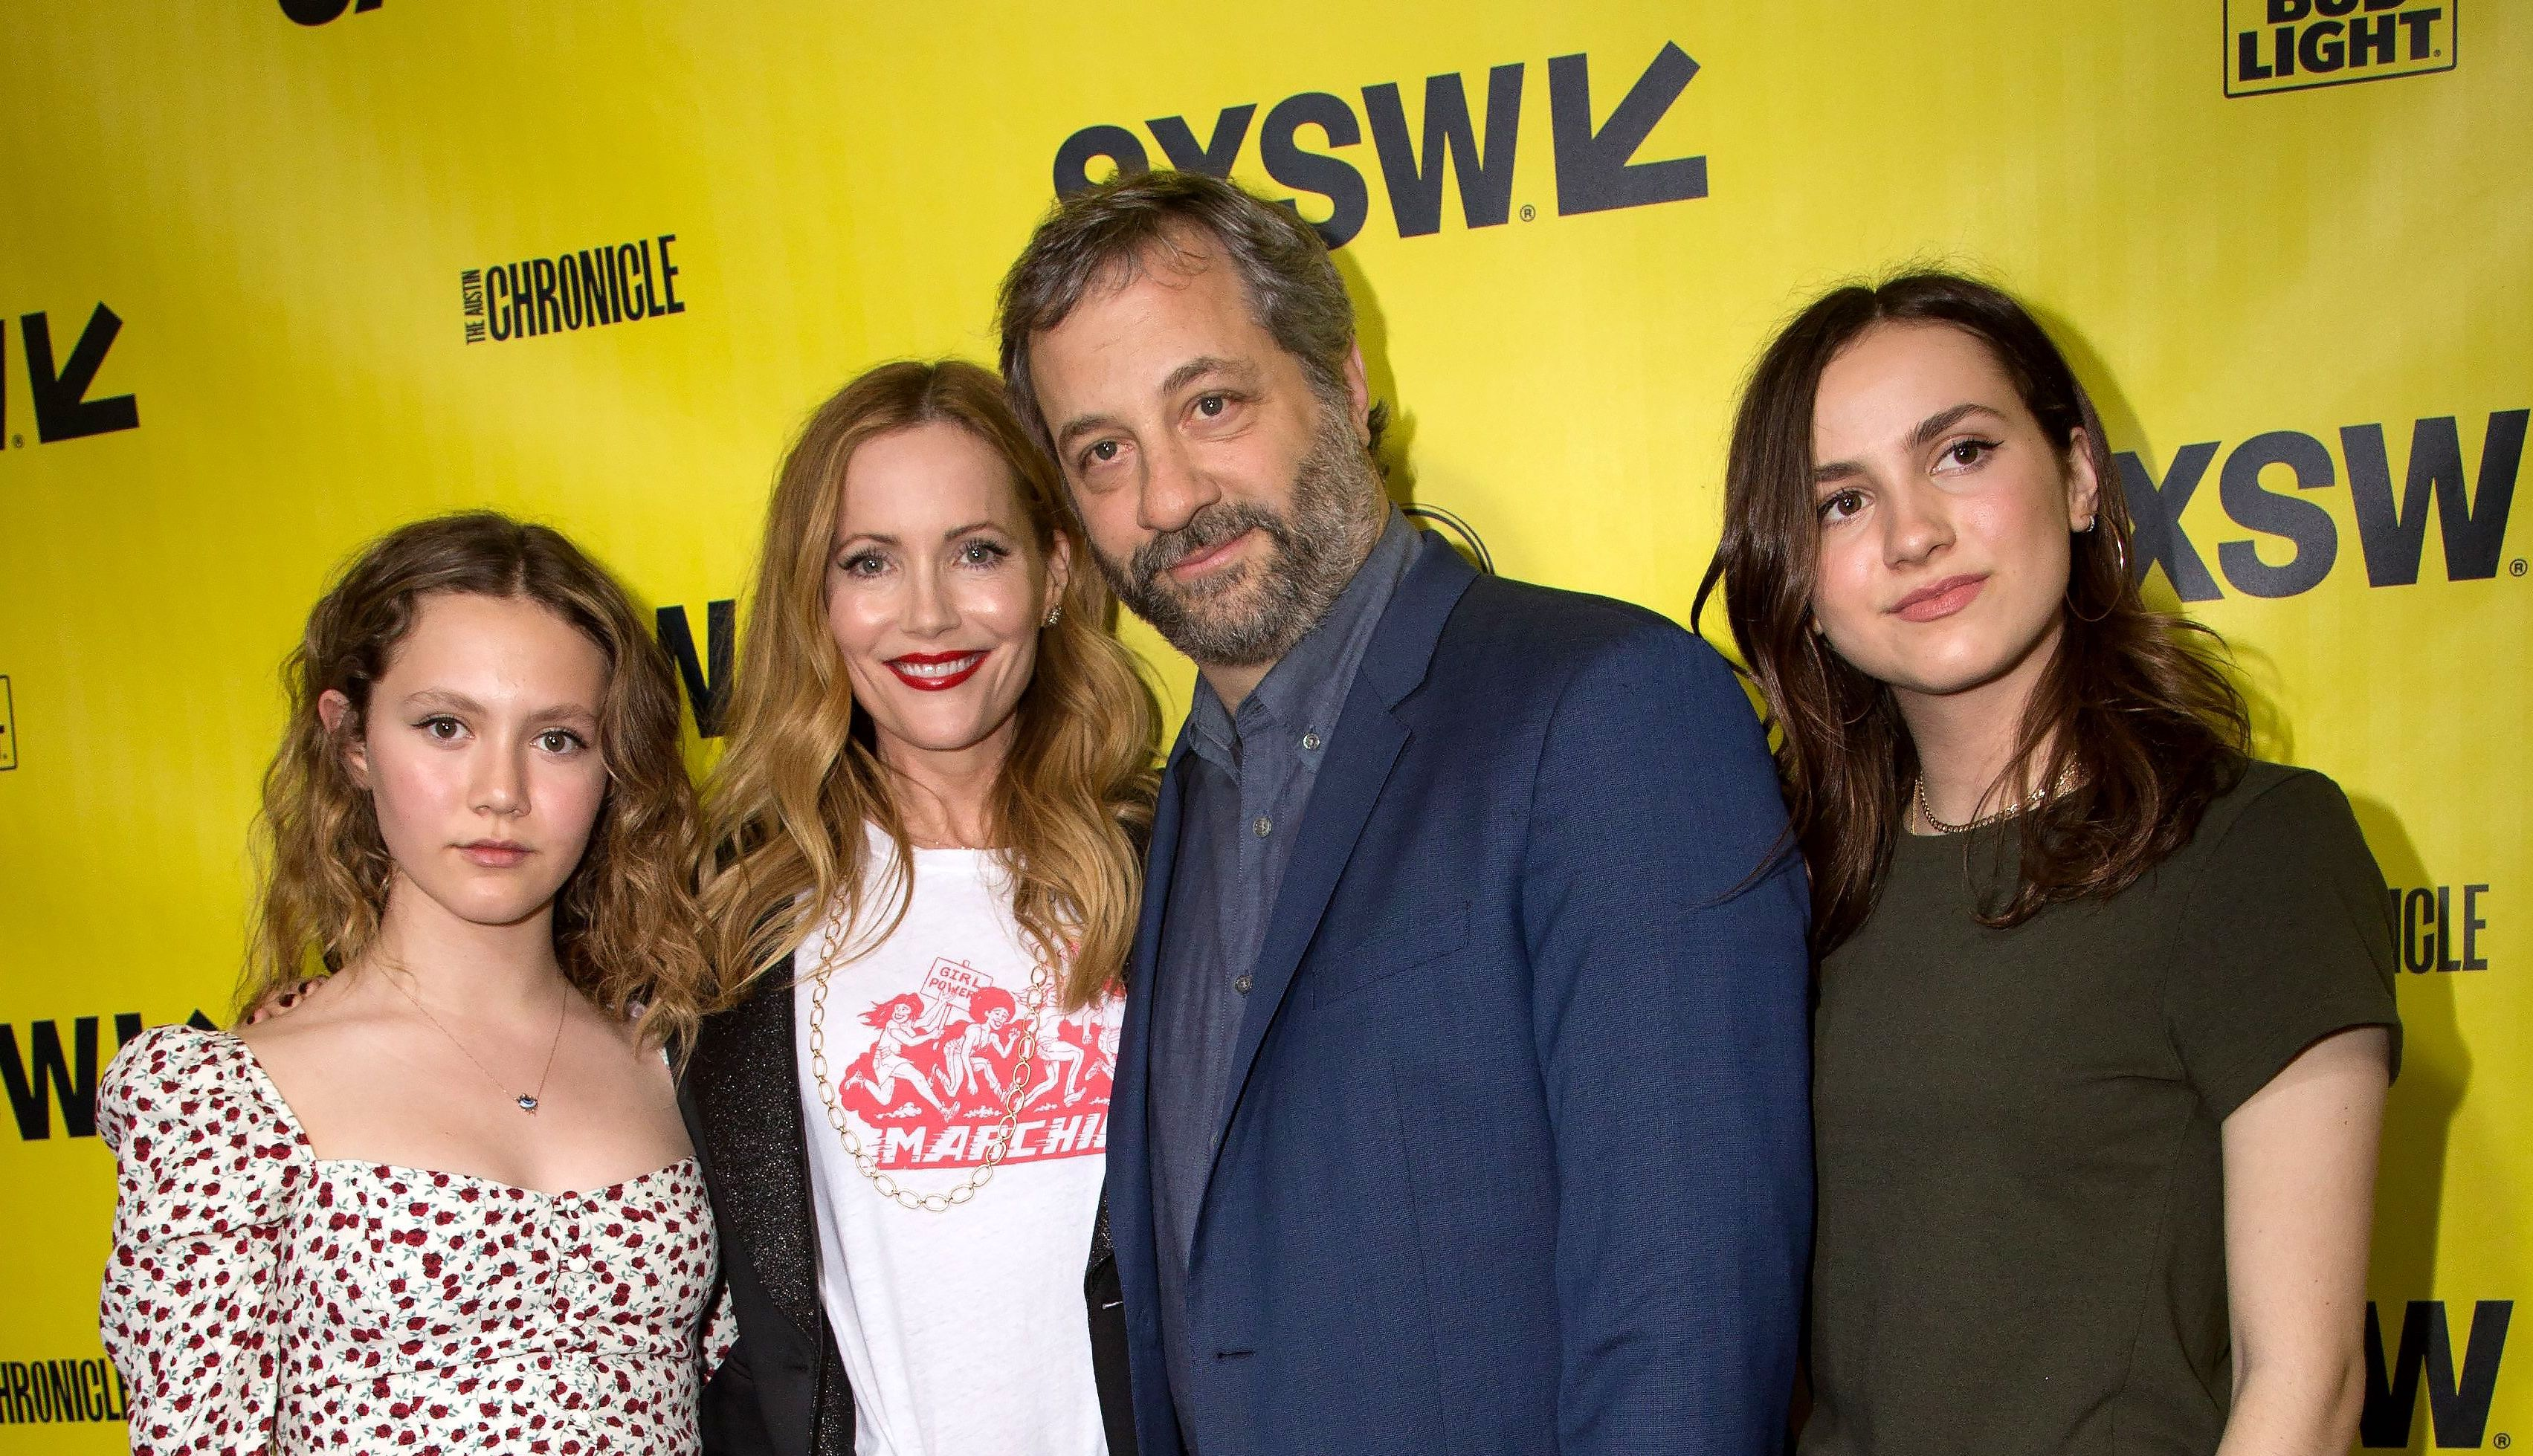 Iris Apatow, Leslie Mann, Judd Apatow and Maude Apatow'Blockers' film premiere, SXSW Festival, Austin, USA - 10 Mar 2018